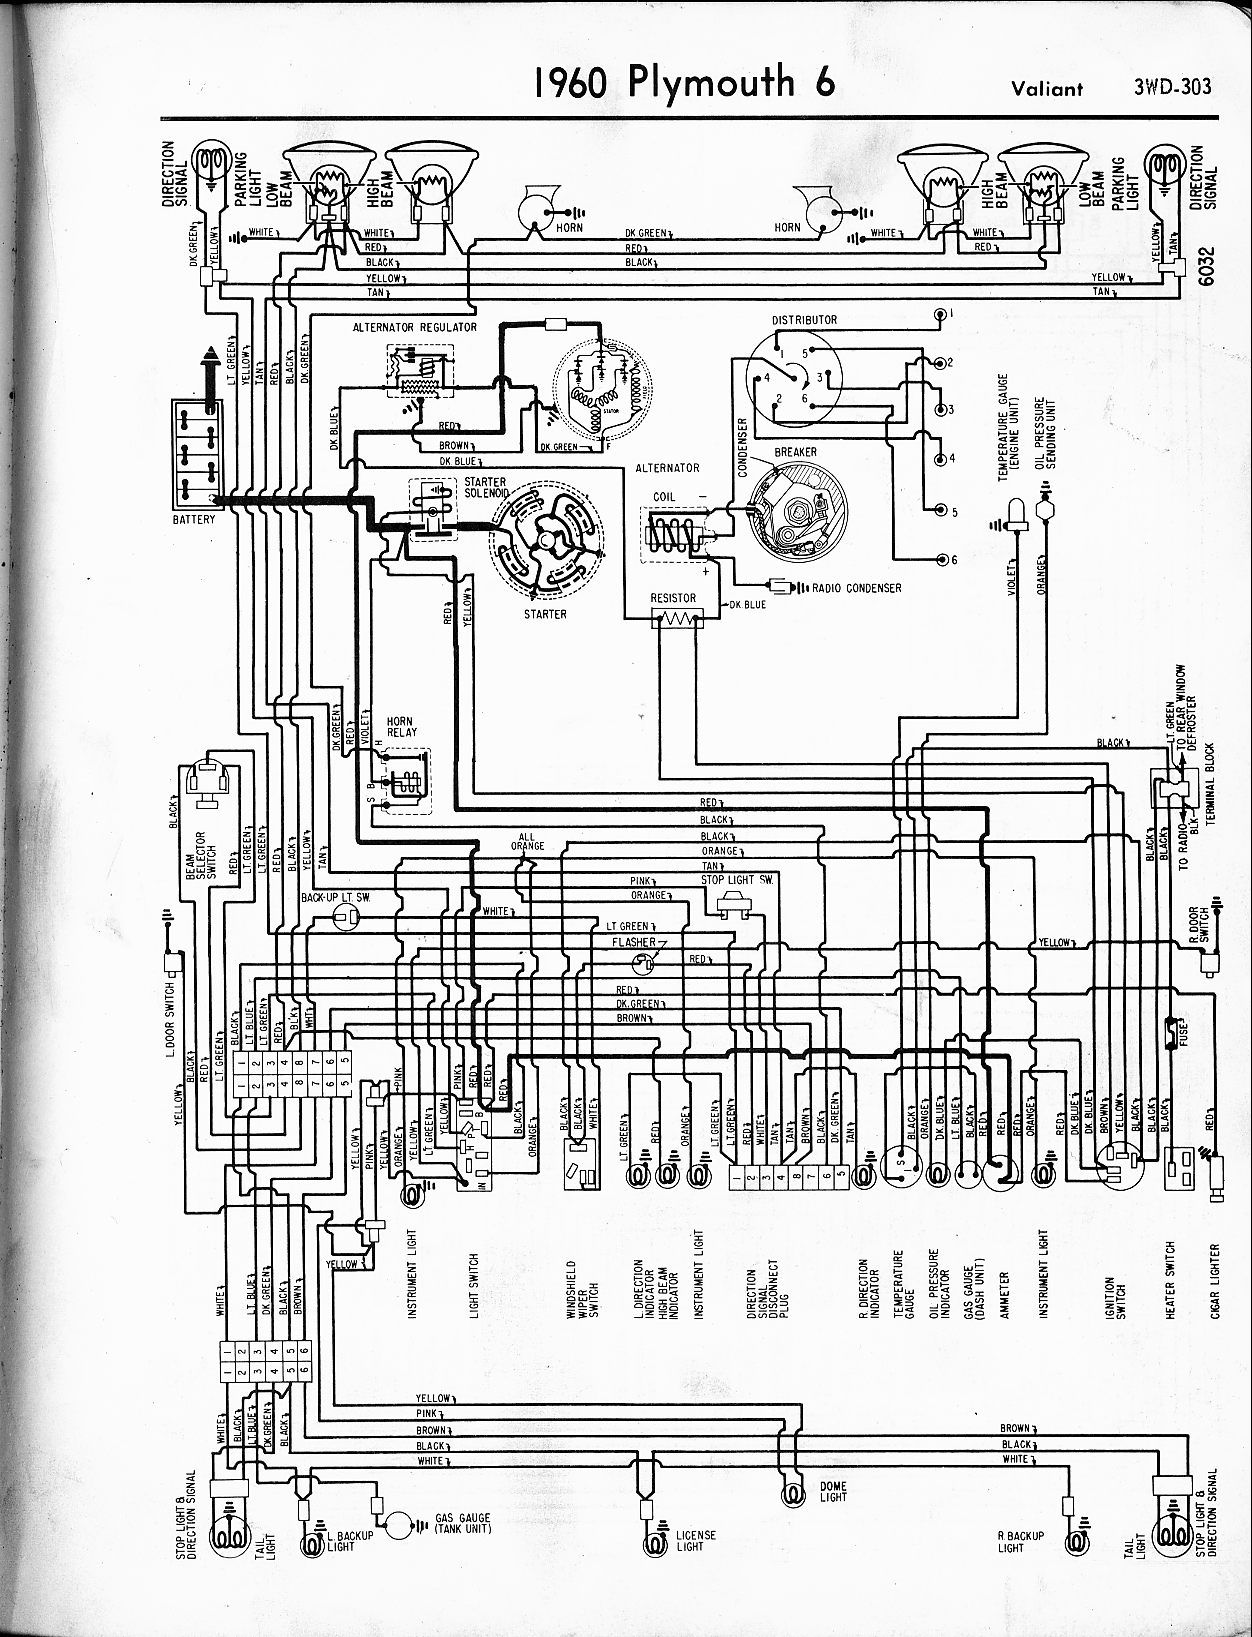 1956 - 1965 Plymouth Wiring - The Old Car Manual Project